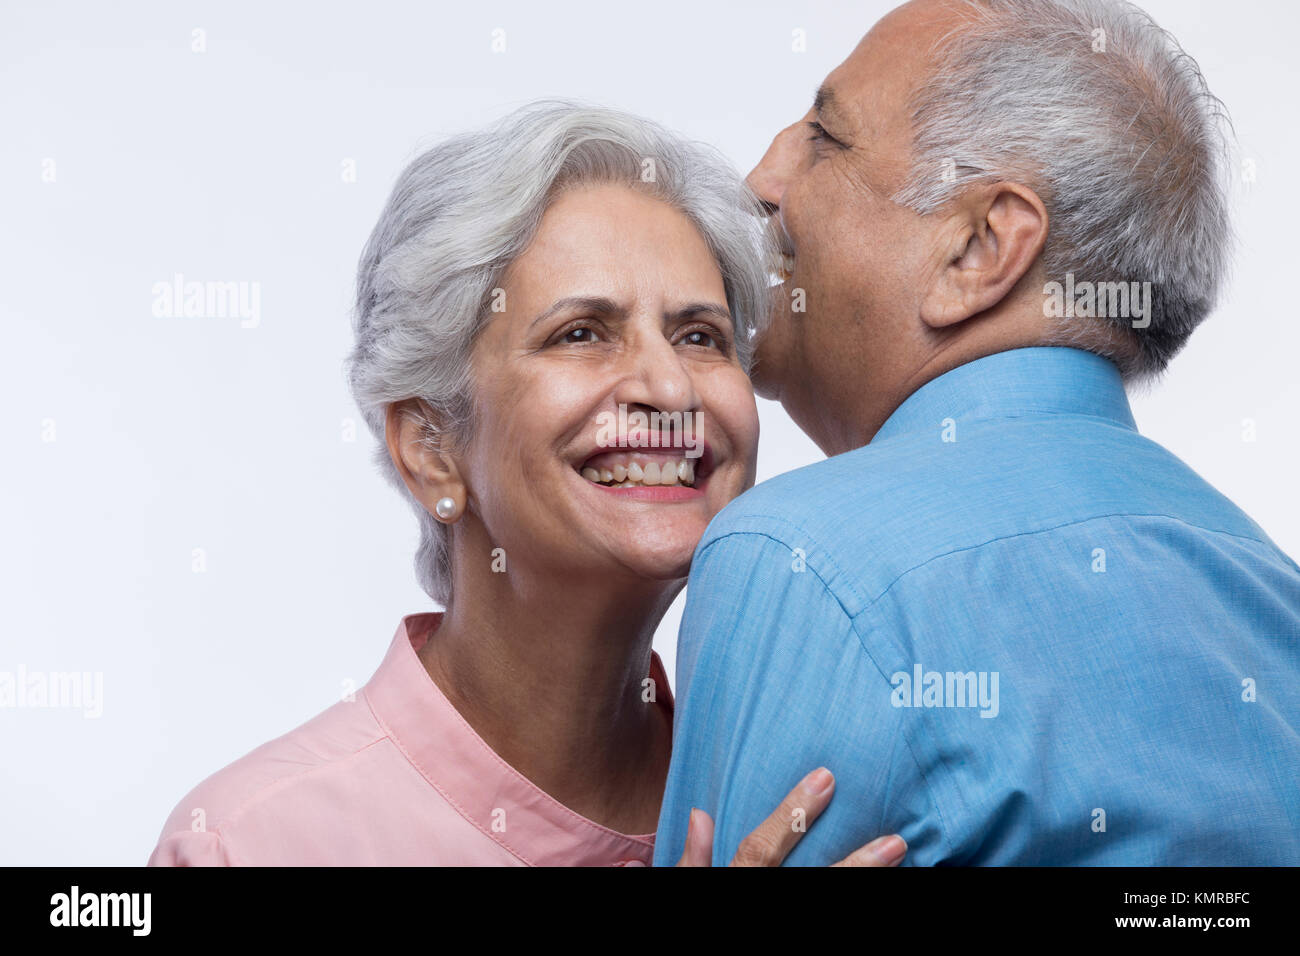 Close up of older couple embracing each other - Stock Image